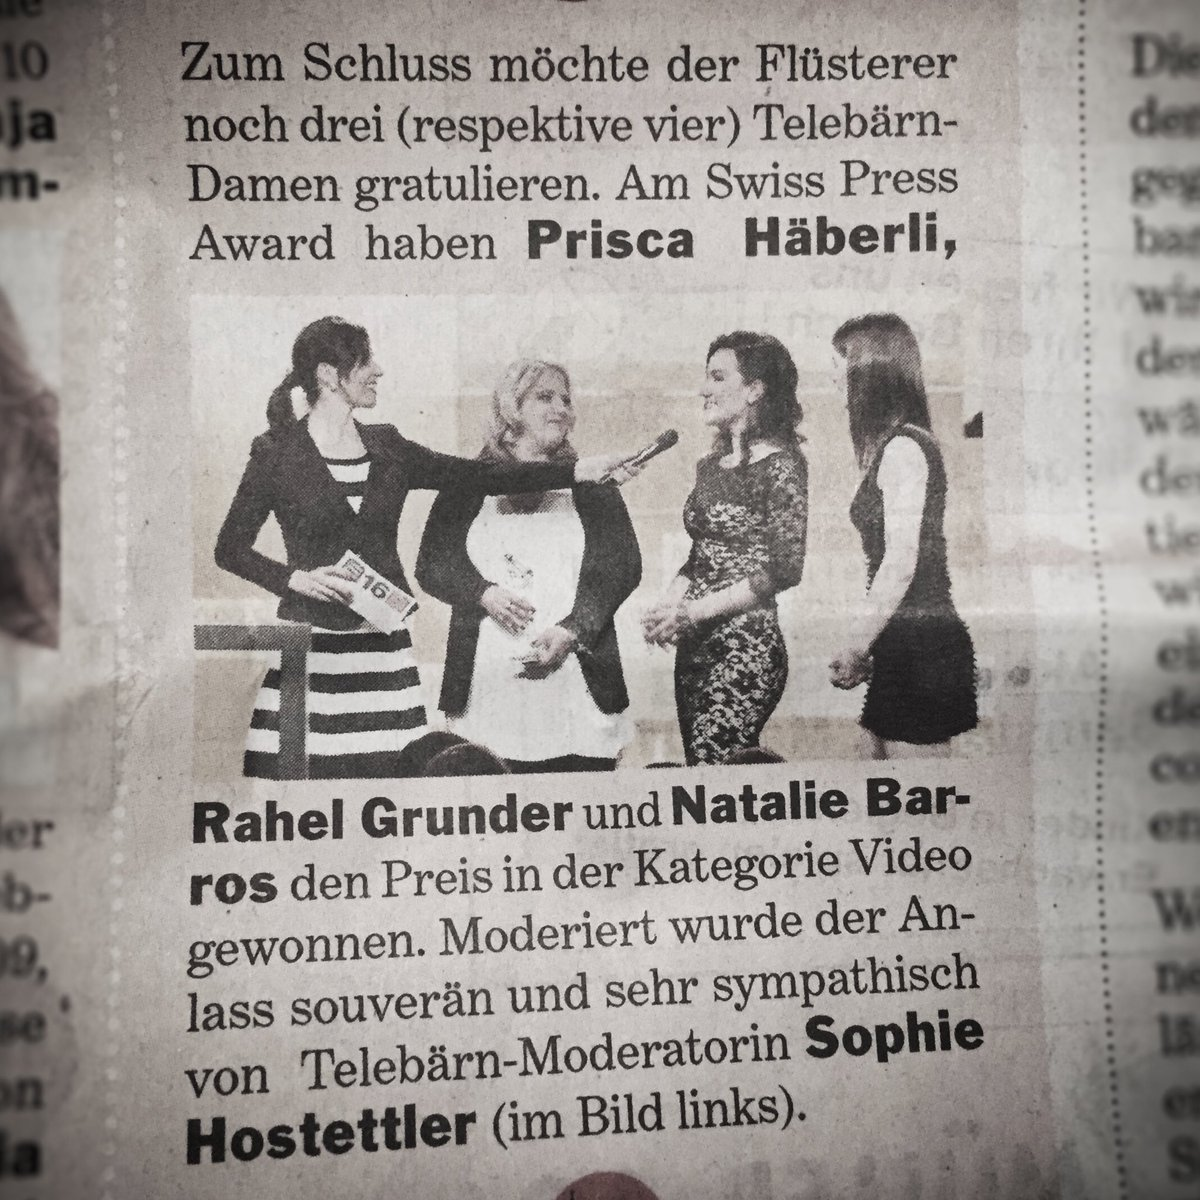 Merci :) @bernerbaer_news #Flüstertüte #Frauenpower @prisca_haeberli @RahelGrunder & Natalie Barros #swisspressaward https://t.co/qzagkjs1s5